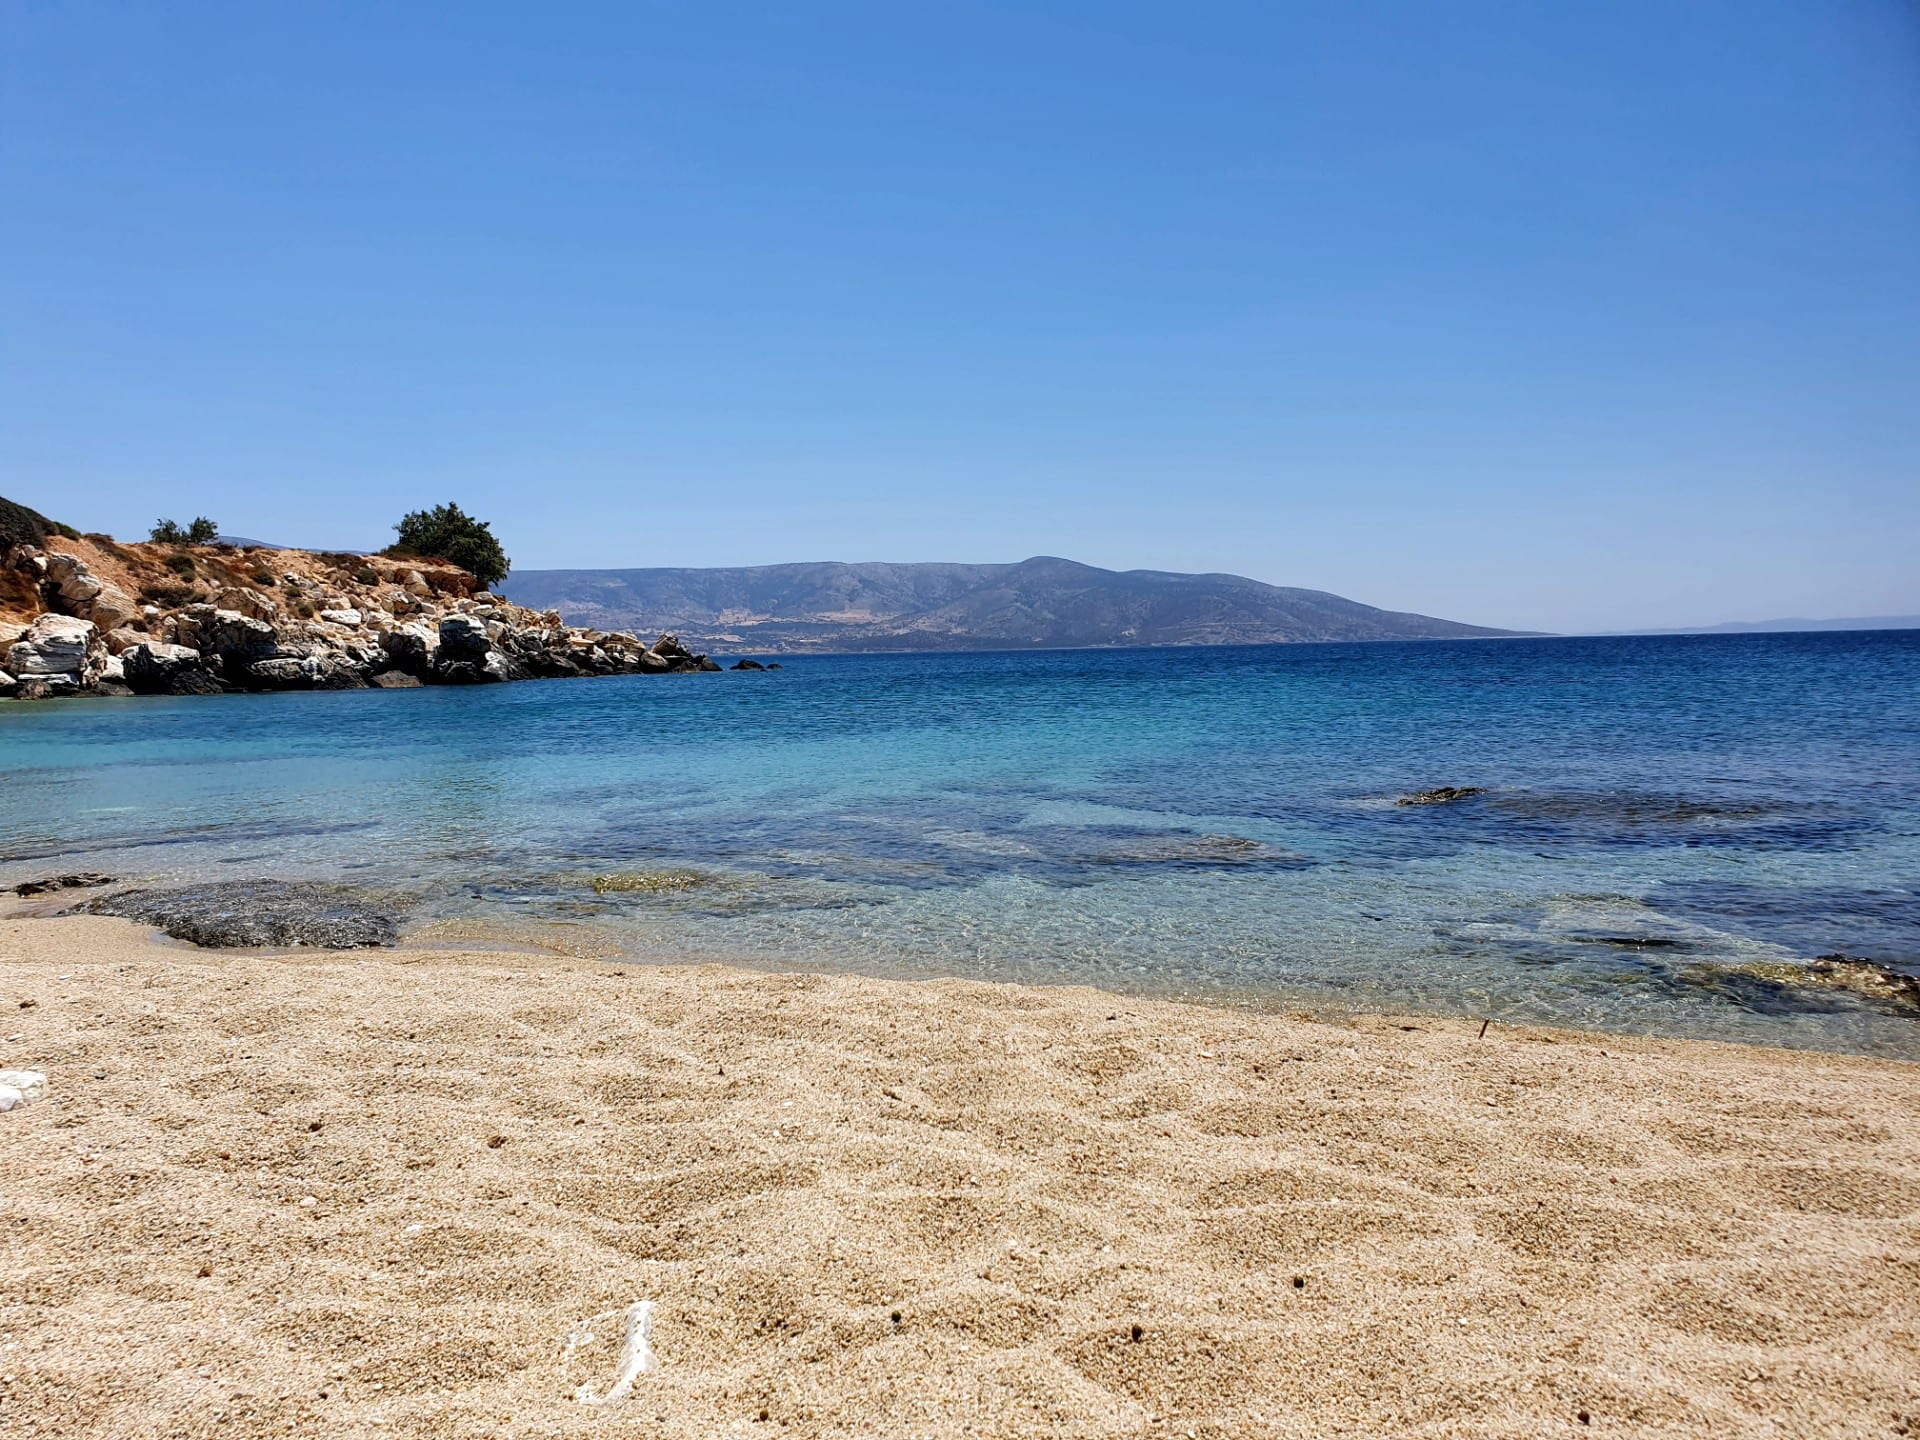 Our quiet bay at Alyko in Naxos